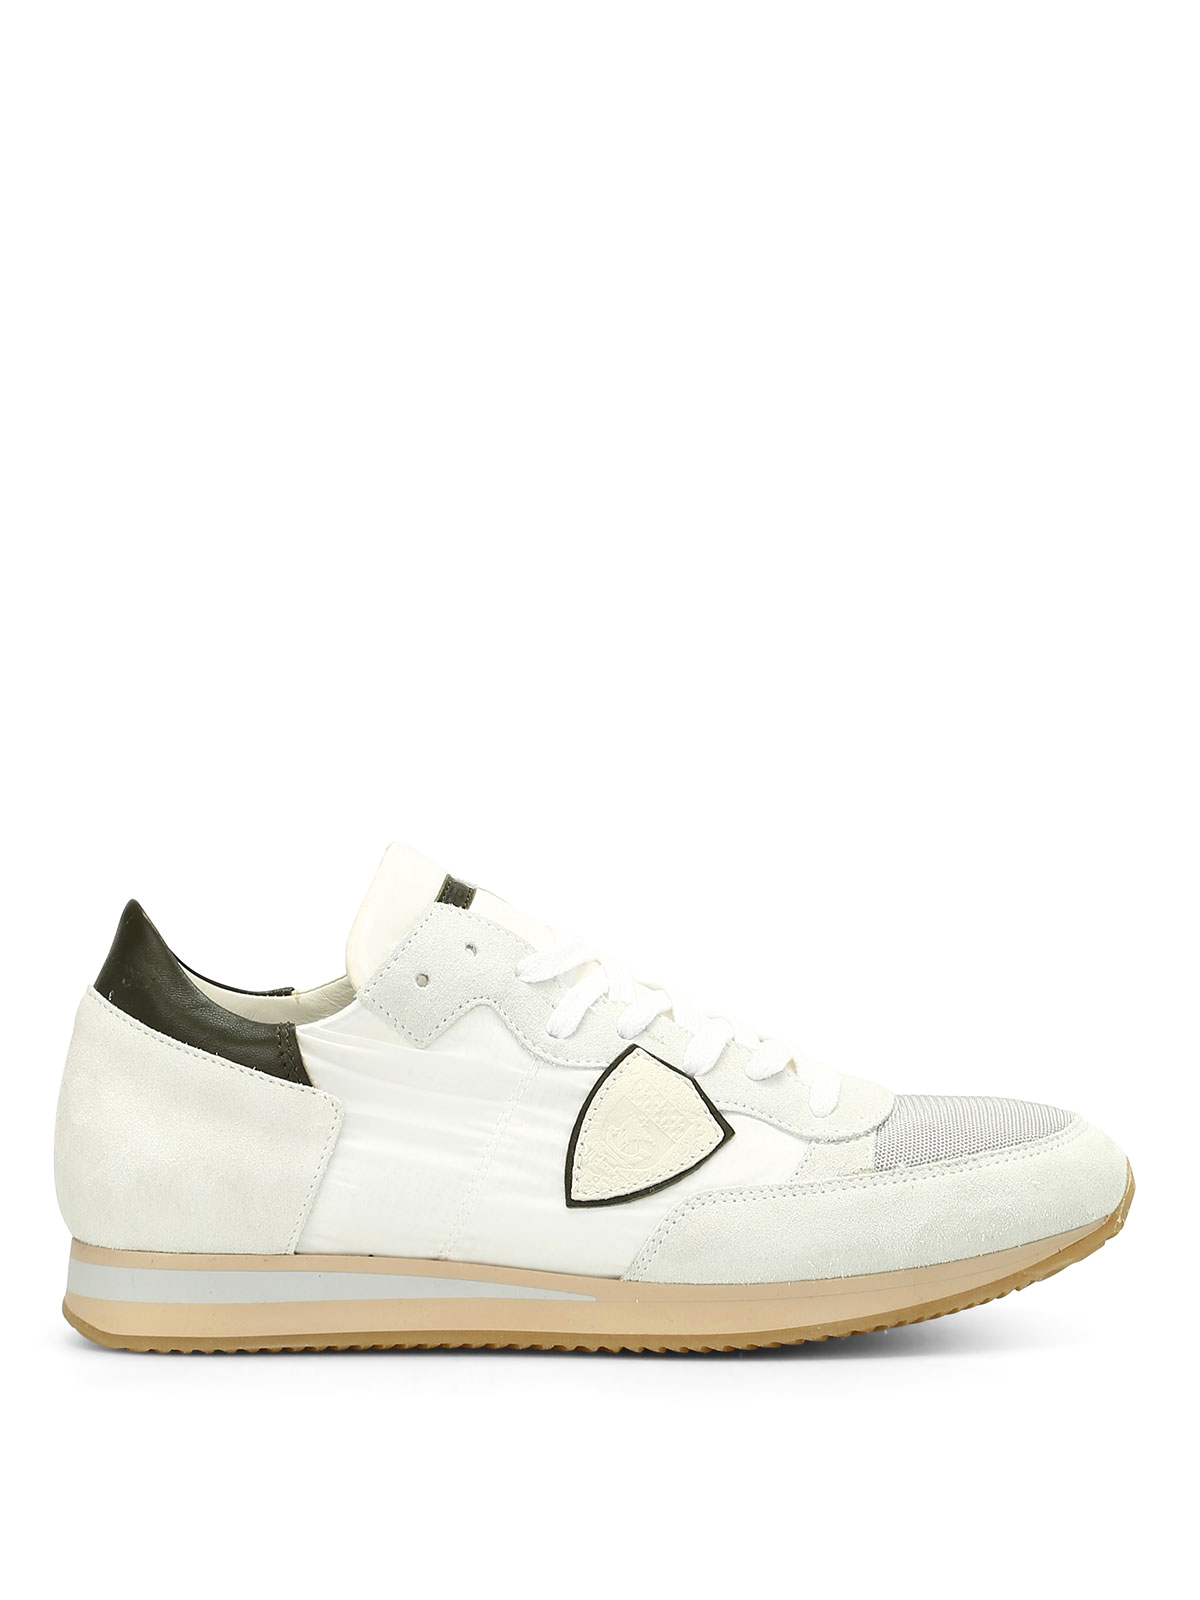 tropez low top basic sneakers by philippe model trainers ikrix. Black Bedroom Furniture Sets. Home Design Ideas